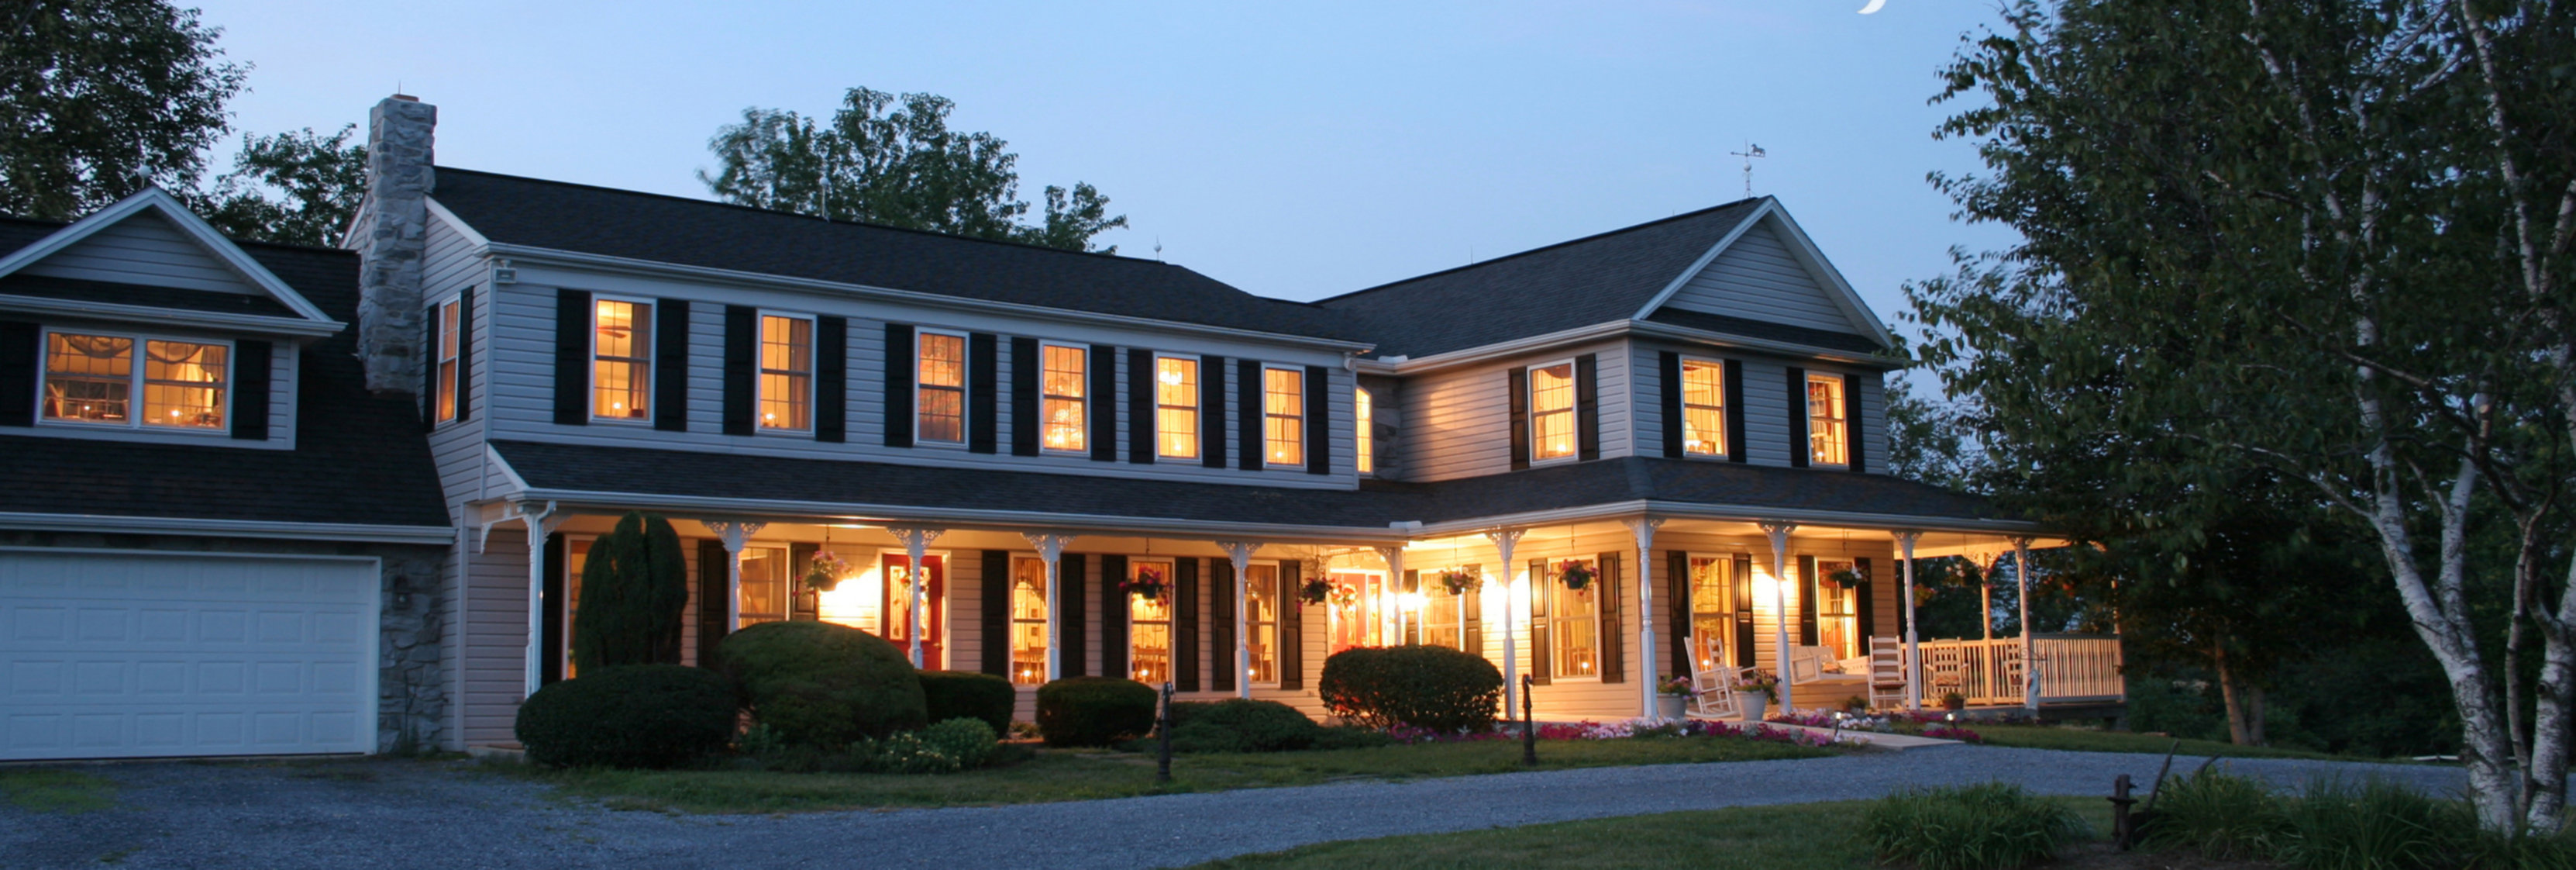 Hummelstown Bed and Breakfast